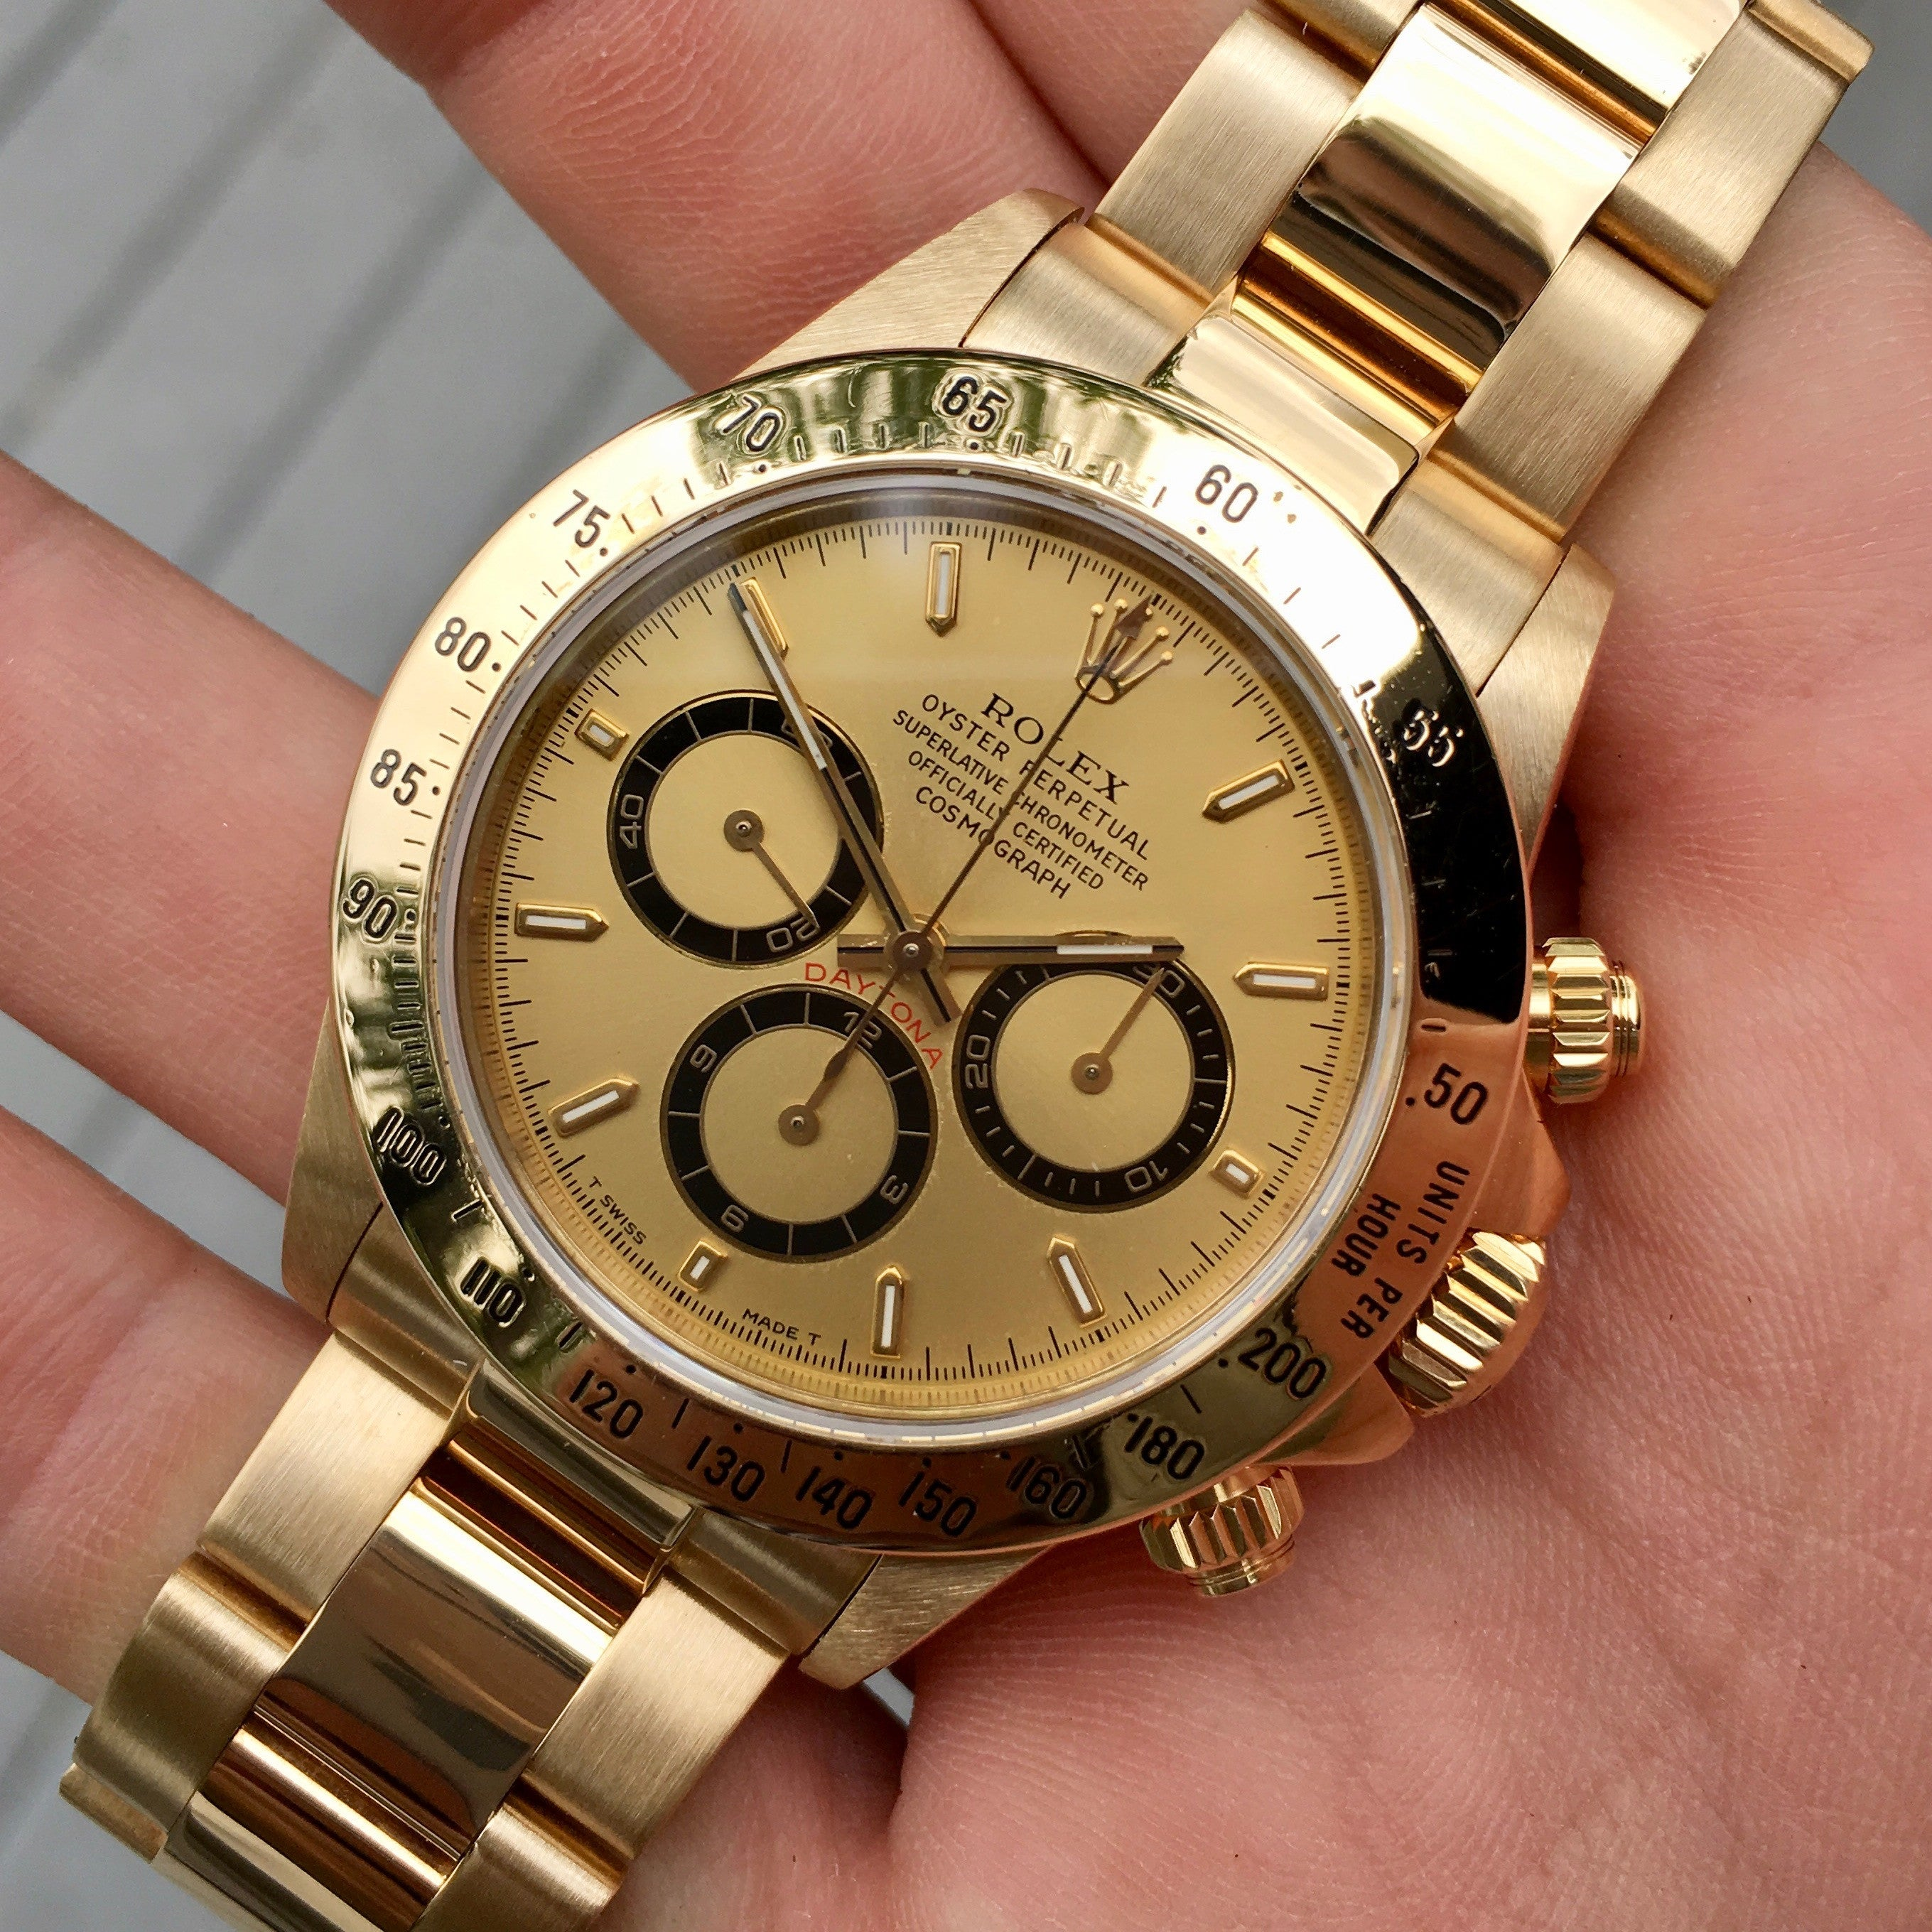 "Vintage Rolex Daytona 16528 Zenith 18K Yellow Gold Chronograph Wristwatch ""R"" Serial Circa 1987 - Hashtag Watch Company"